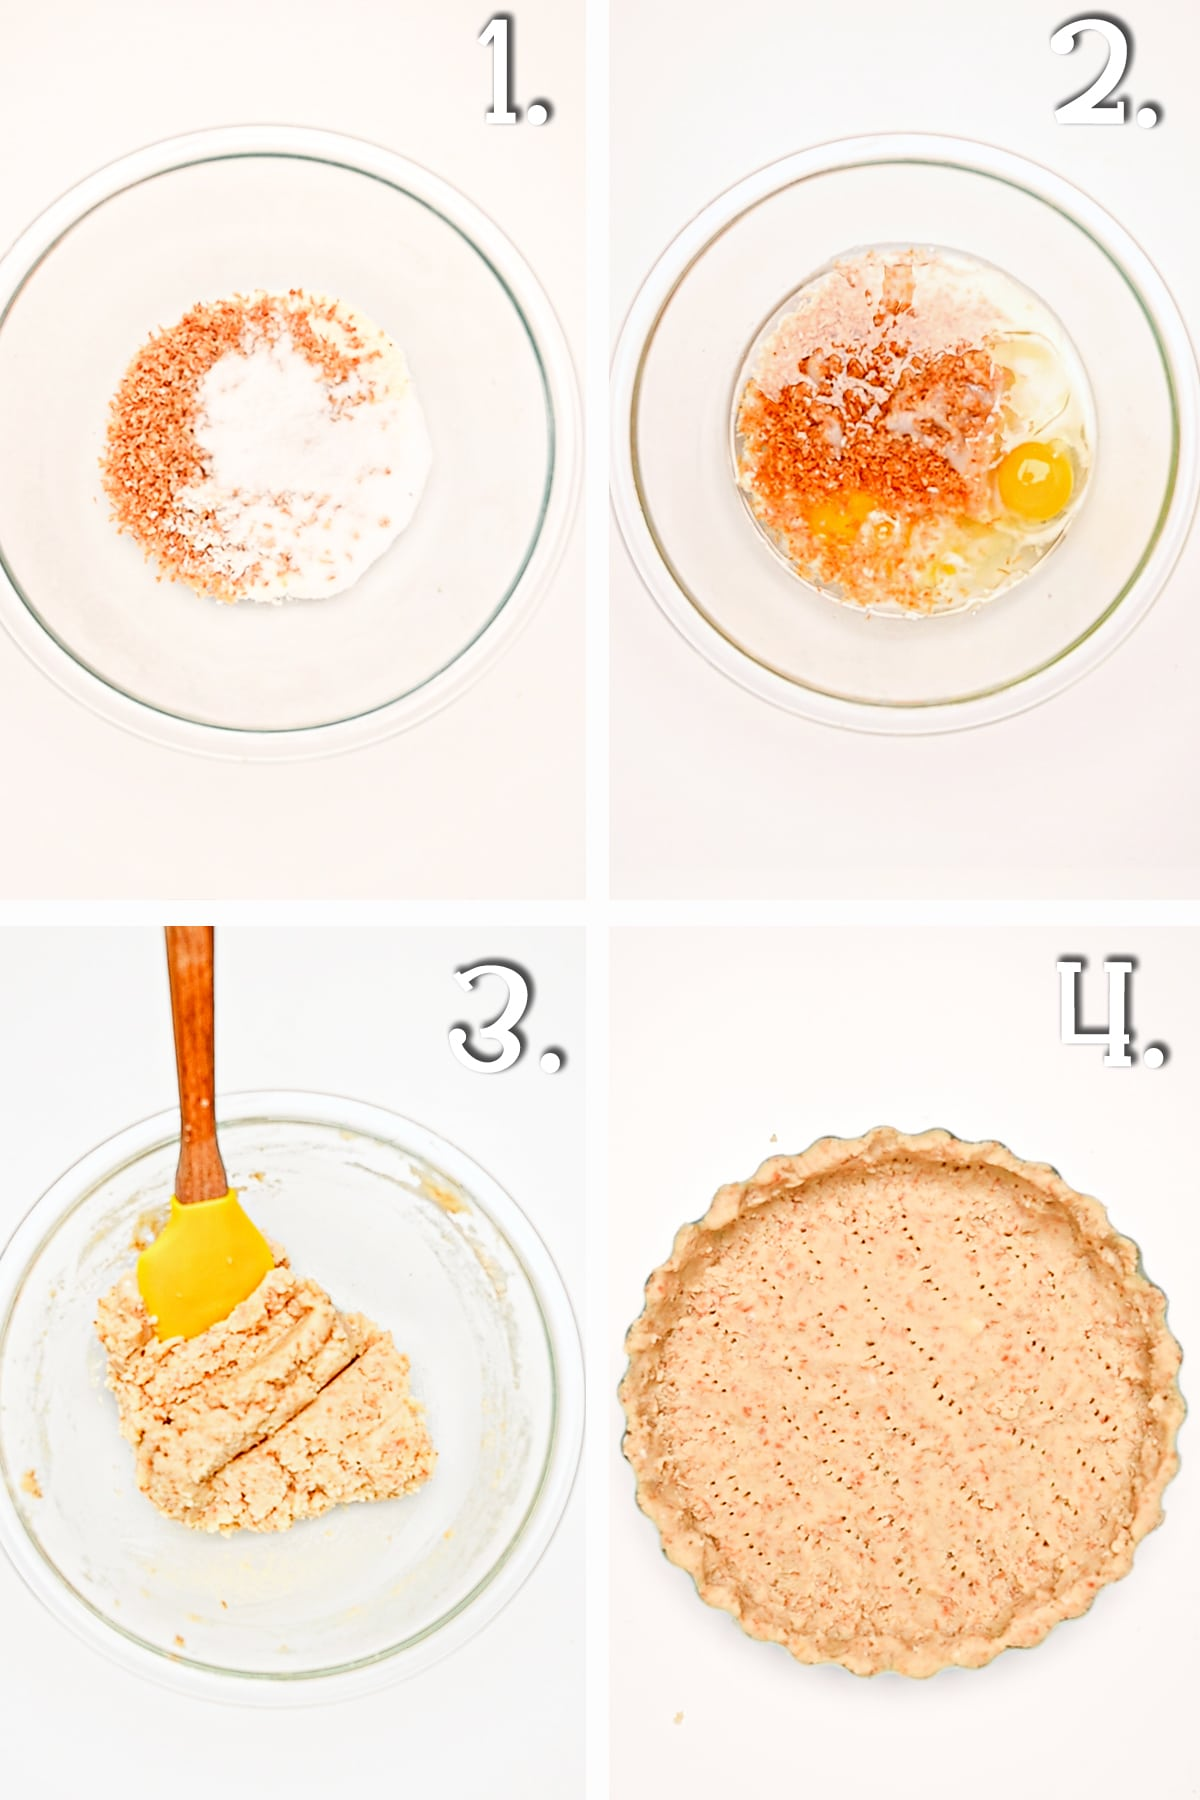 A four panel in process timeline with clear glass bowl on a bright white background showing the steps for making a low carb coconut crust